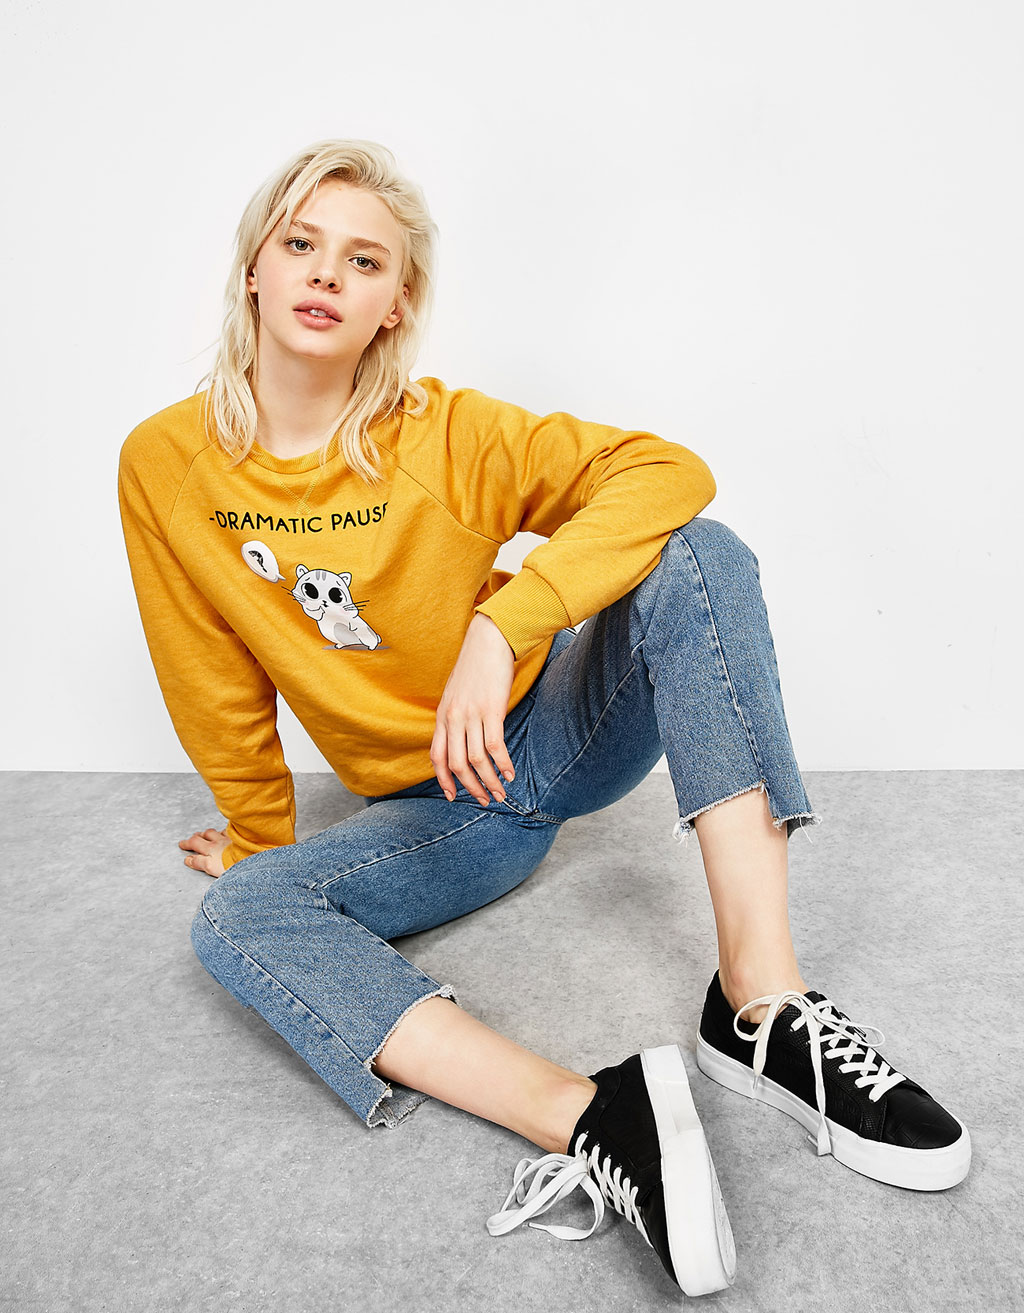 Dramatic Pause printed sweatshirt